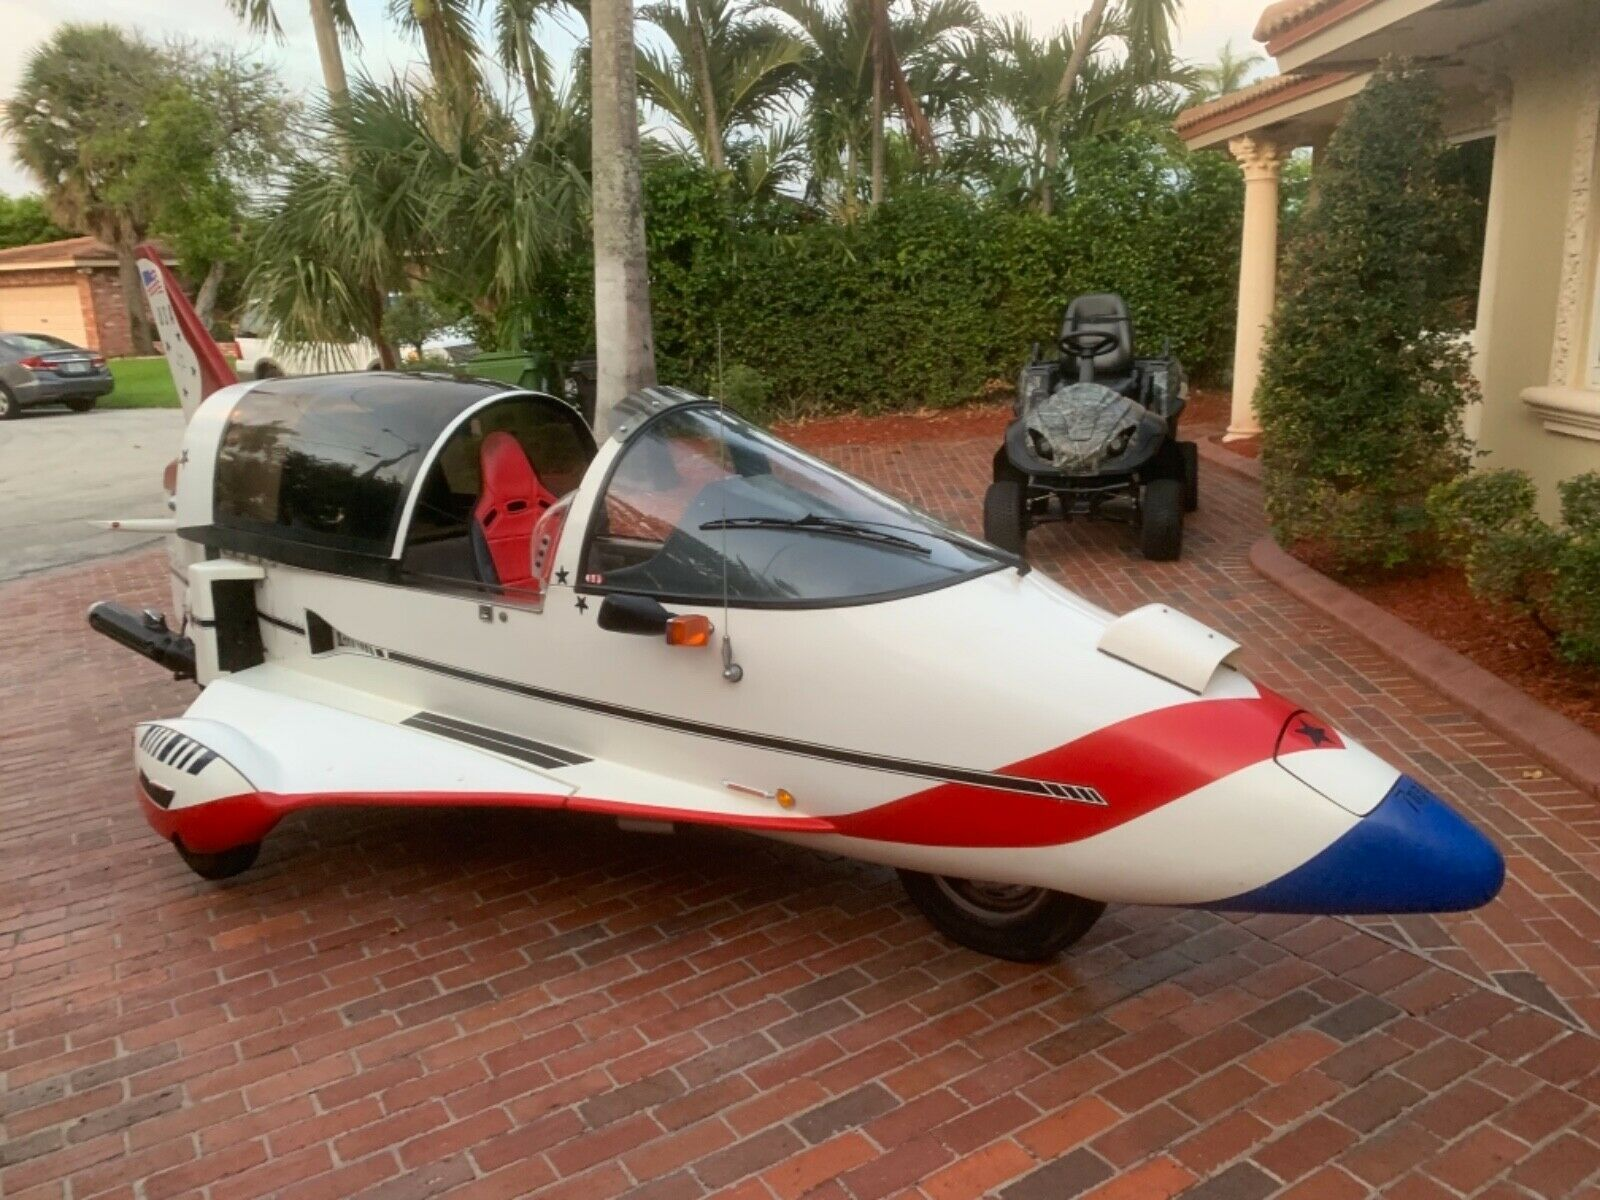 This Airplane-Shaped Car Has Four Wheels, But the Law Only Recognizes Three